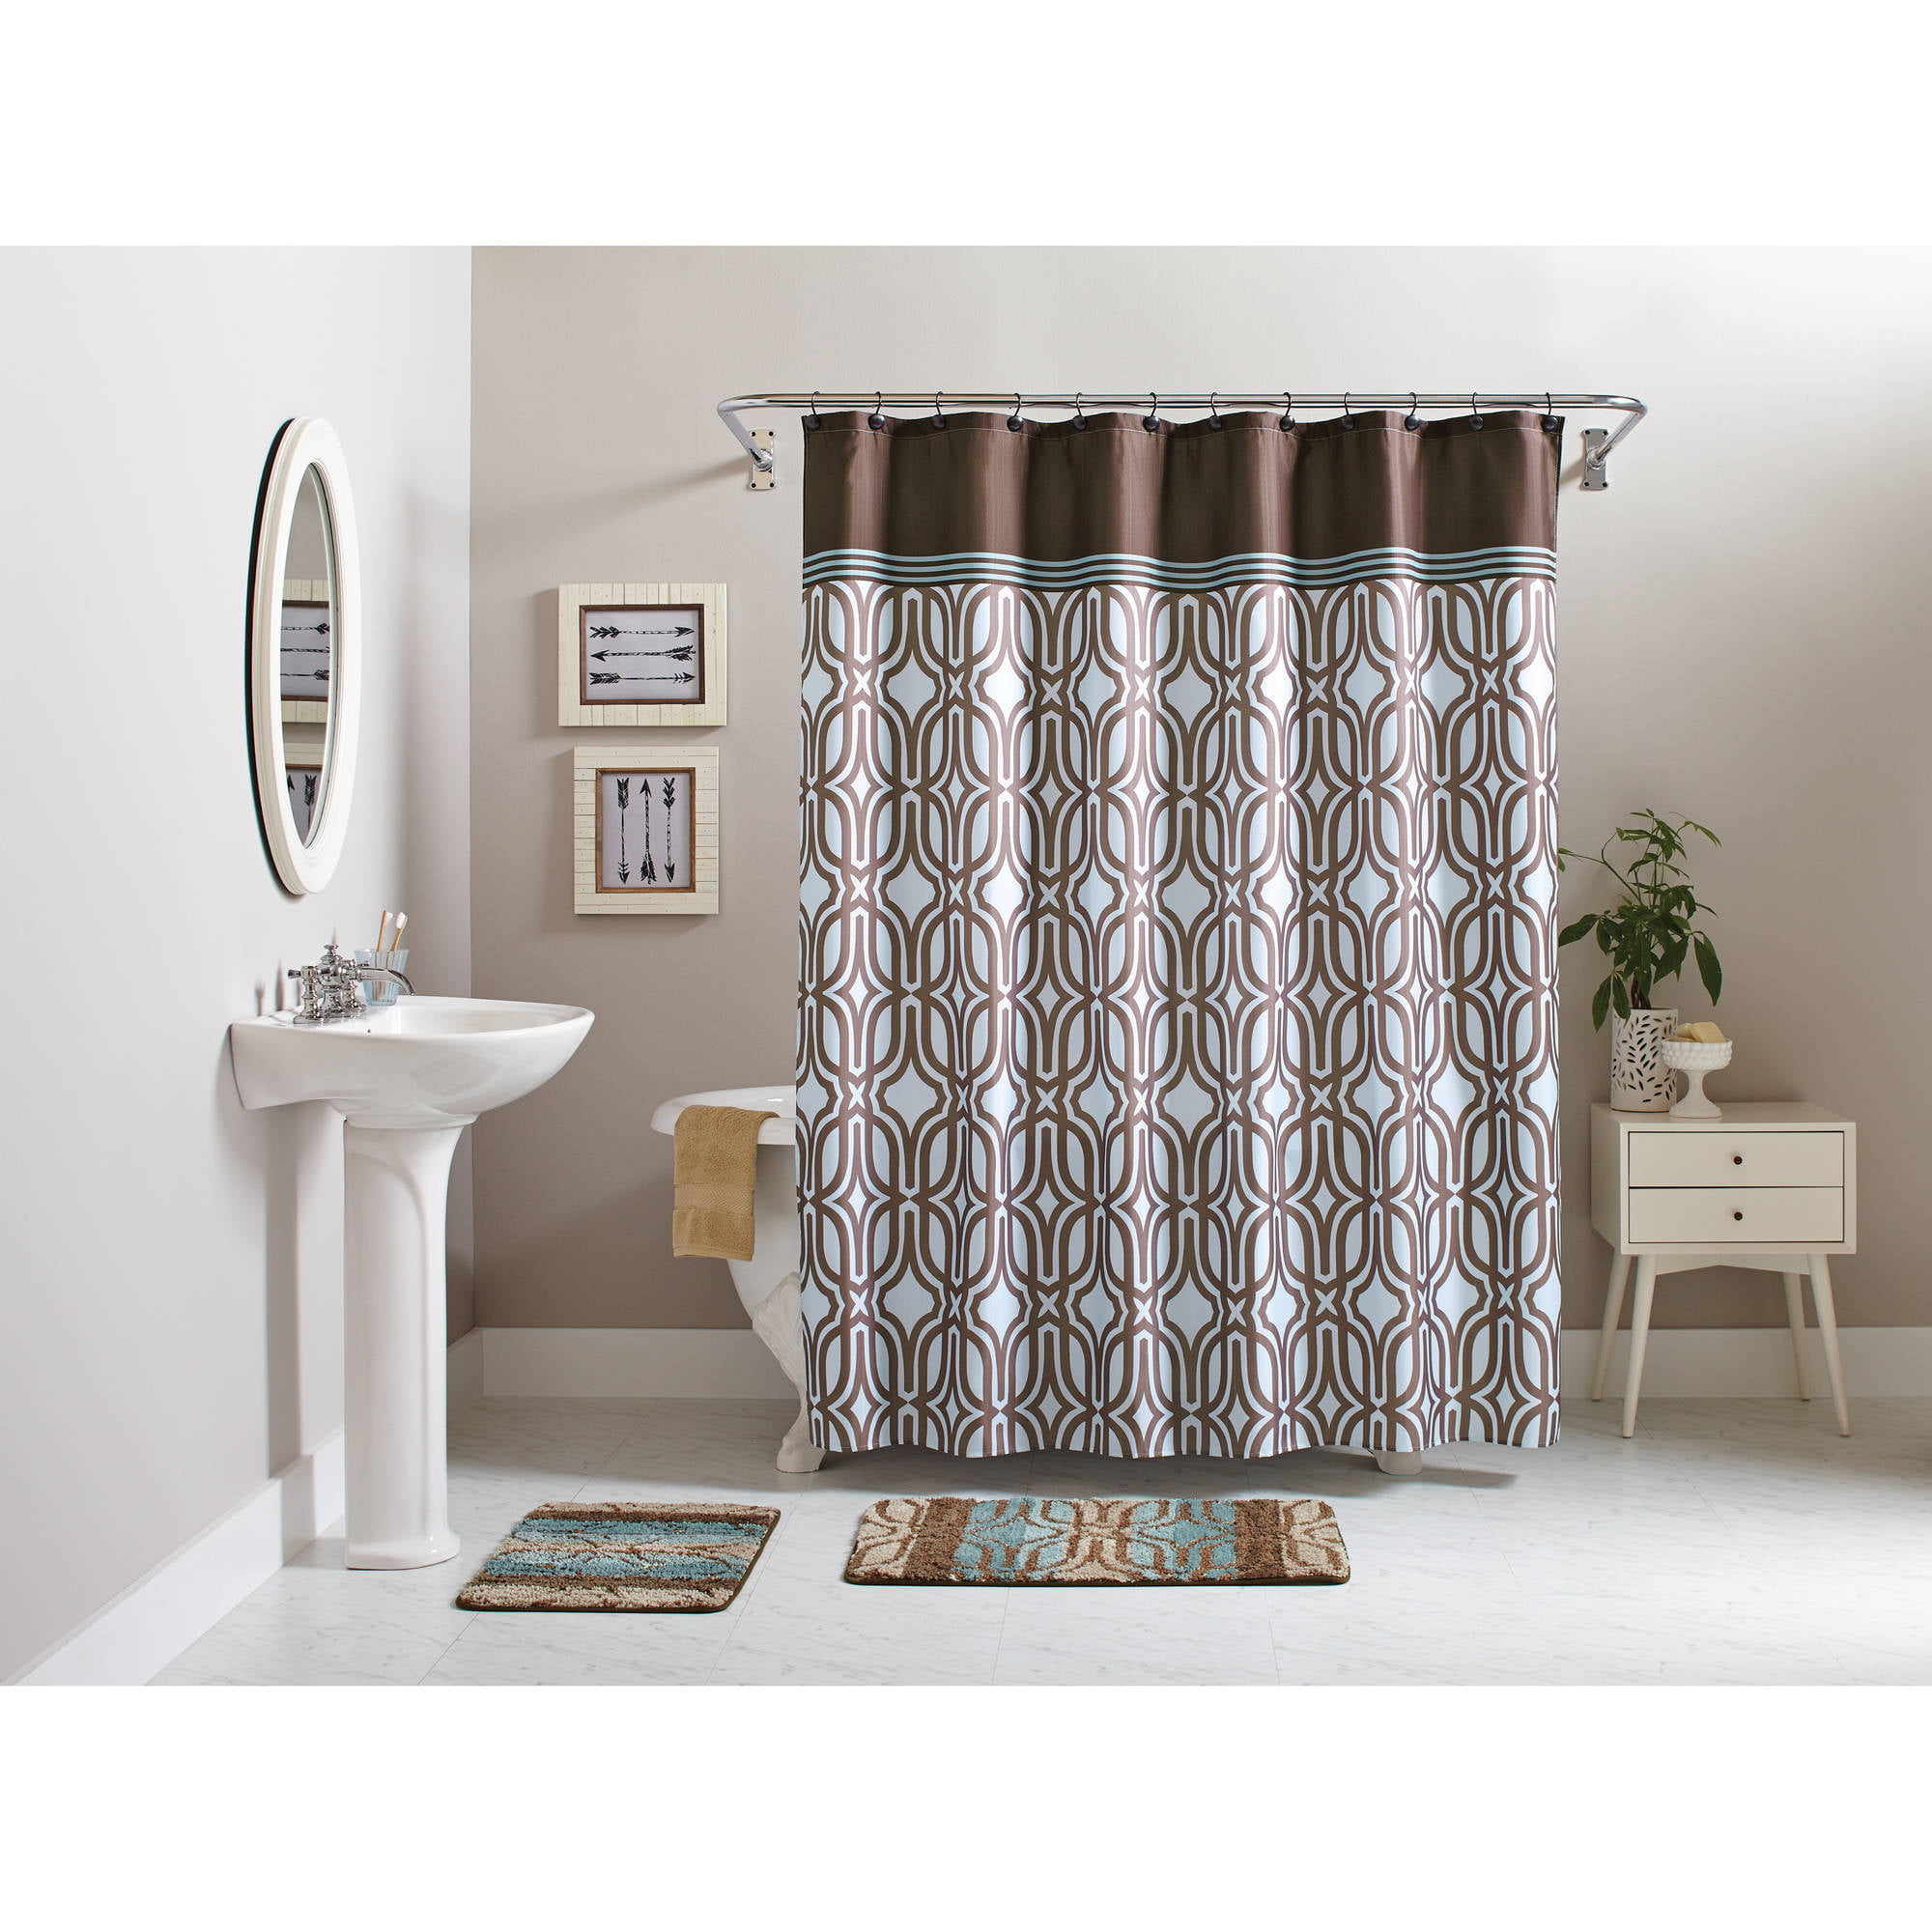 Better Homes And Gardens 15 Piece Geometric Bath Set, Shower Curtain And  Bath Rugs   Walmart.com